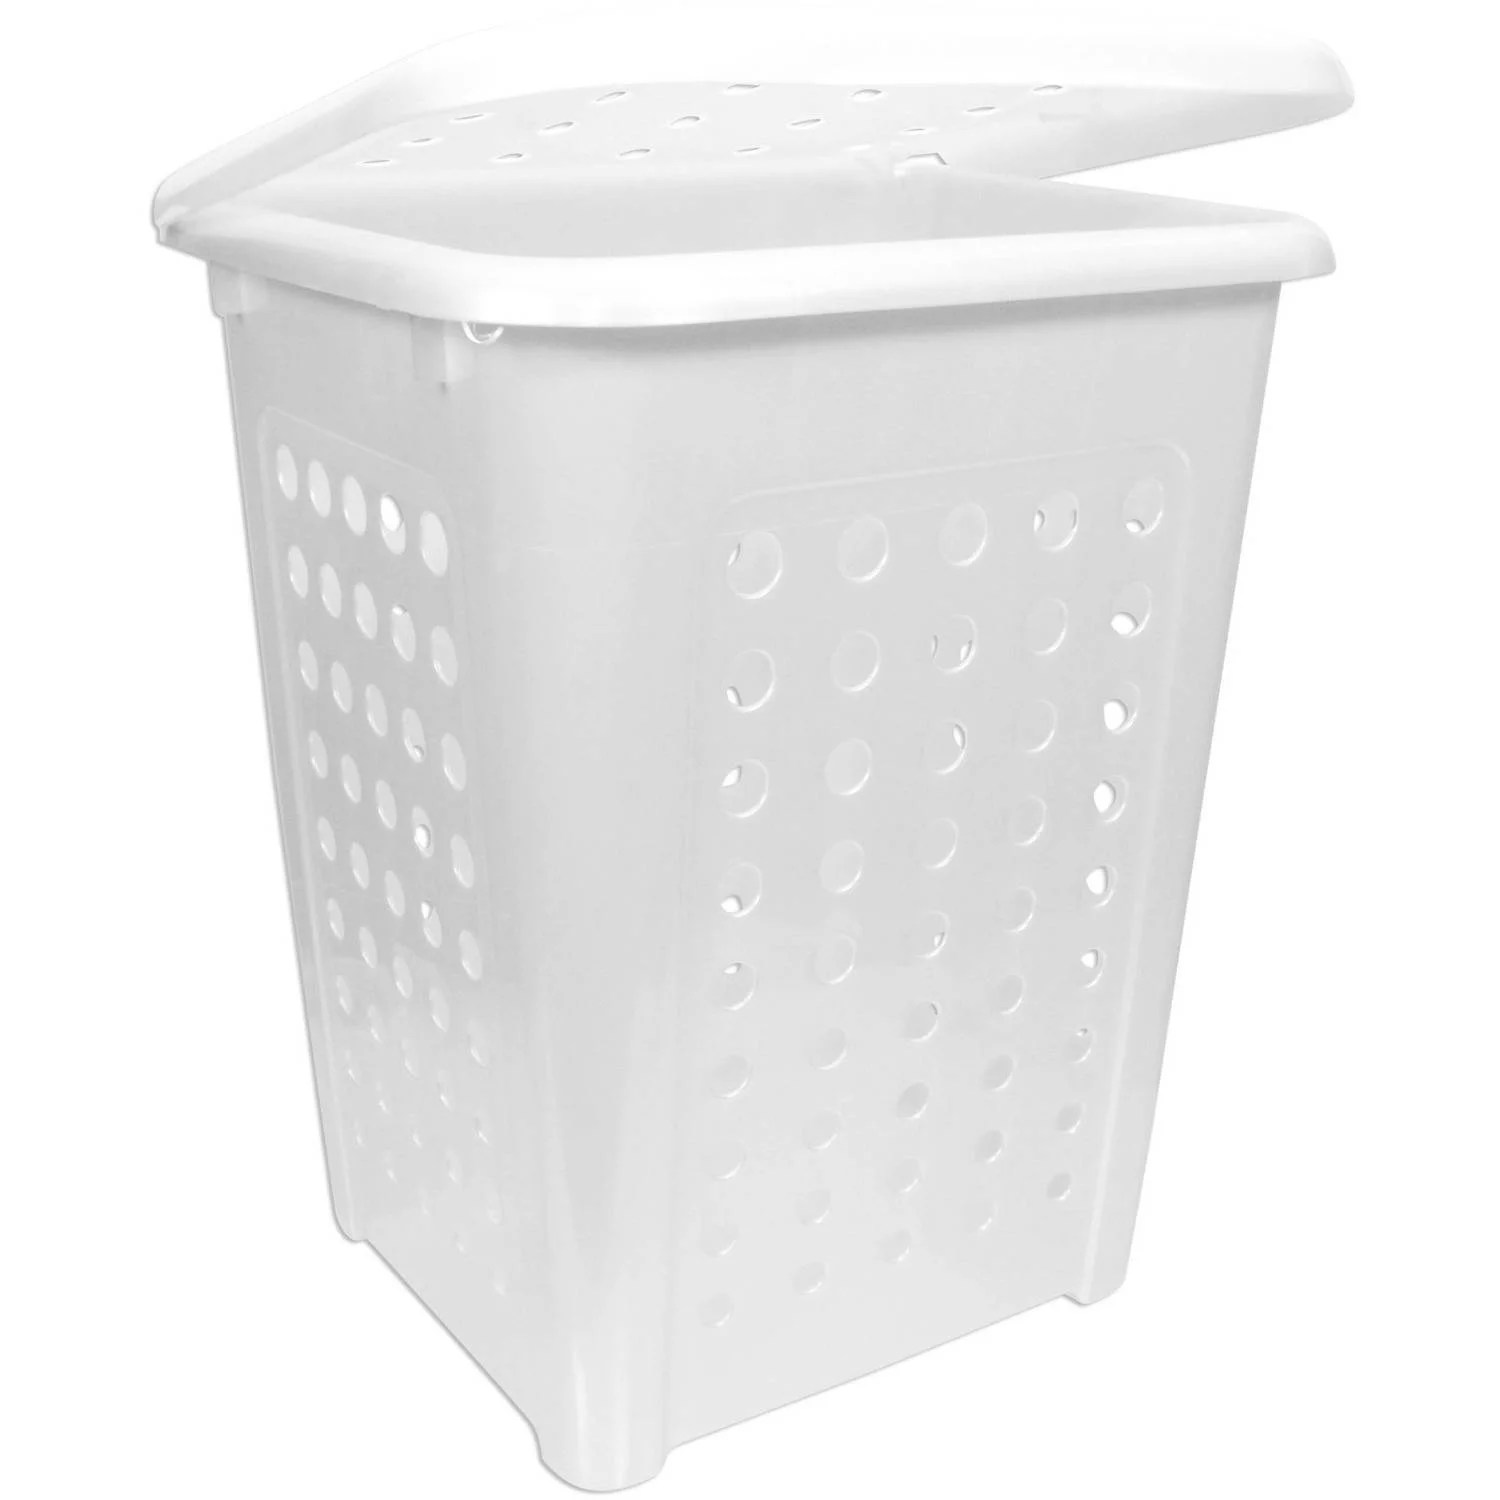 Clothes Baskets Home Logic Extra Large Capacity Lidded Laundry Hamper